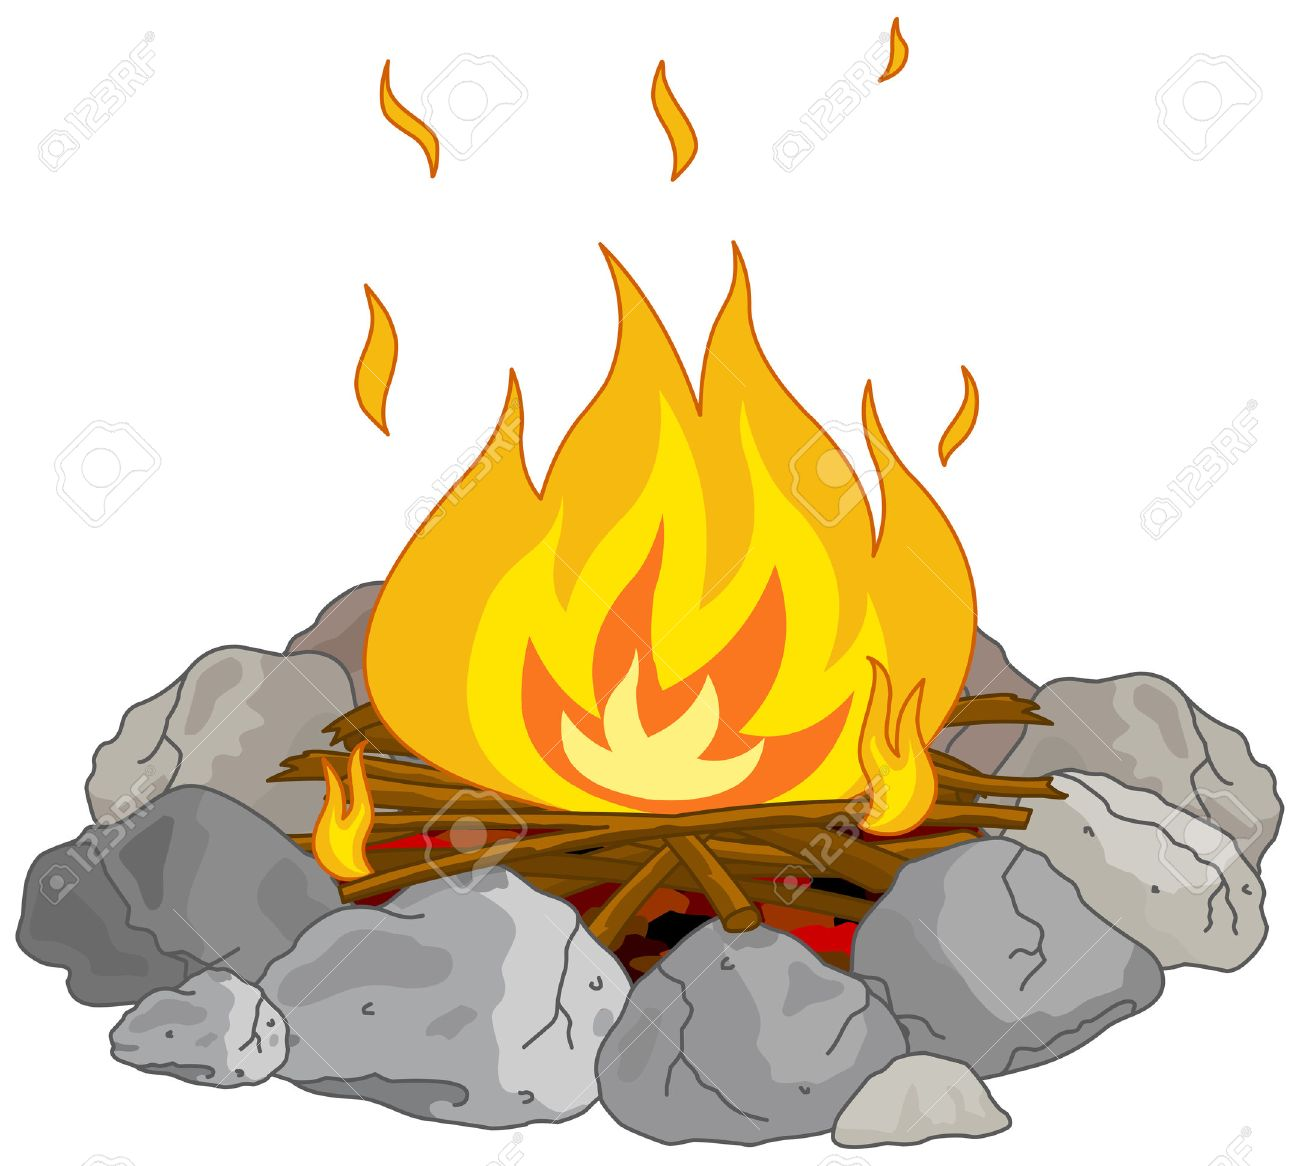 hight resolution of illustration of flame into fire pit stock vector 33677794